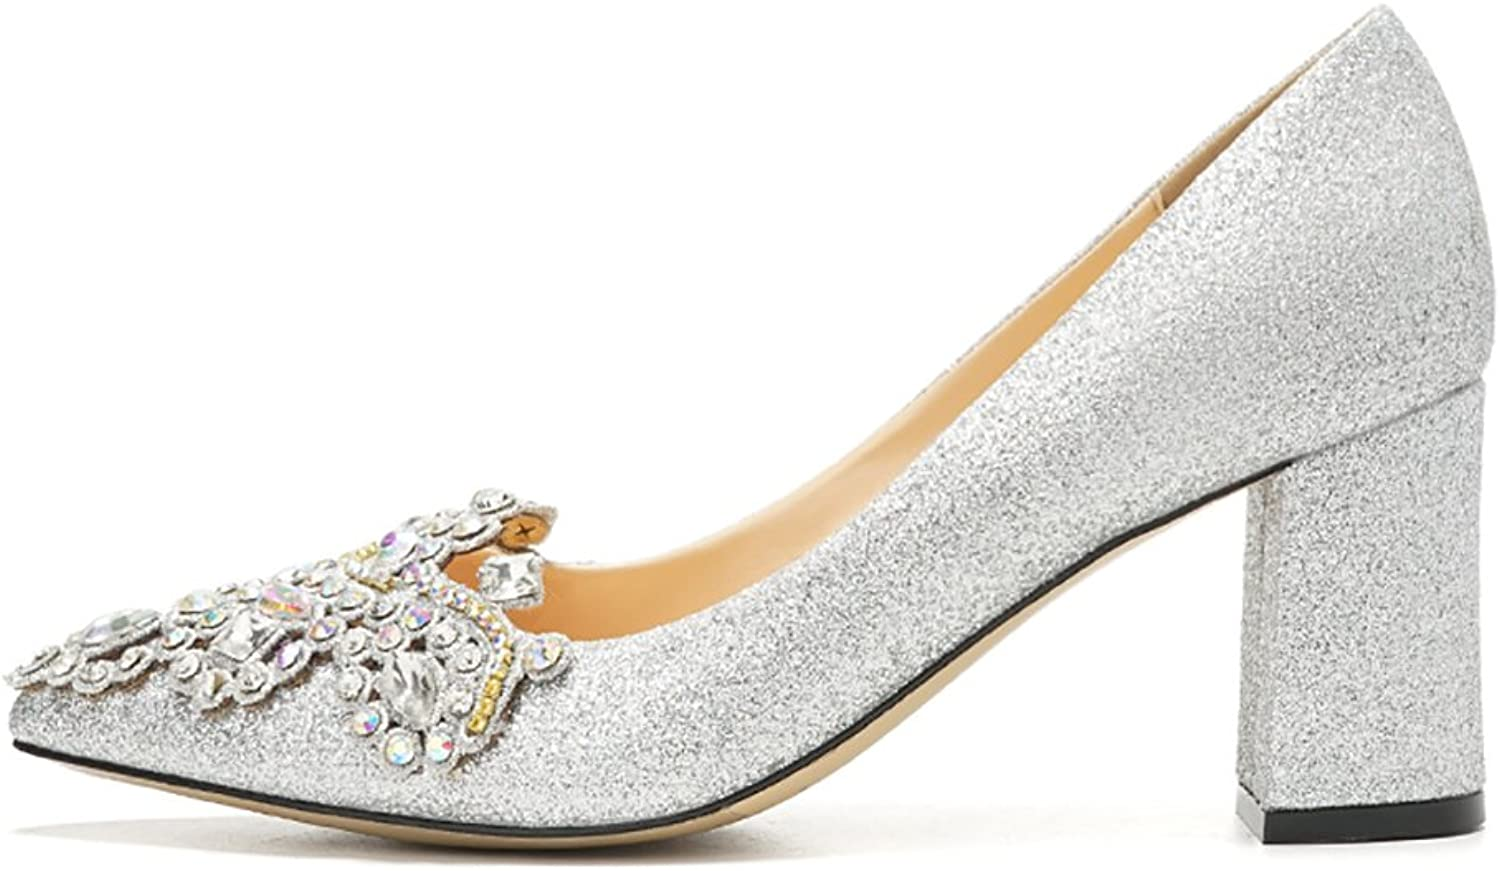 WENJUN Thick with Rhinestones 2018 New Spring Sequins High Heels Silver Wedding shoes Comfortable Pregnant Women Crystal shoes Dress shoes (color   Silver 9CM, Size   37)